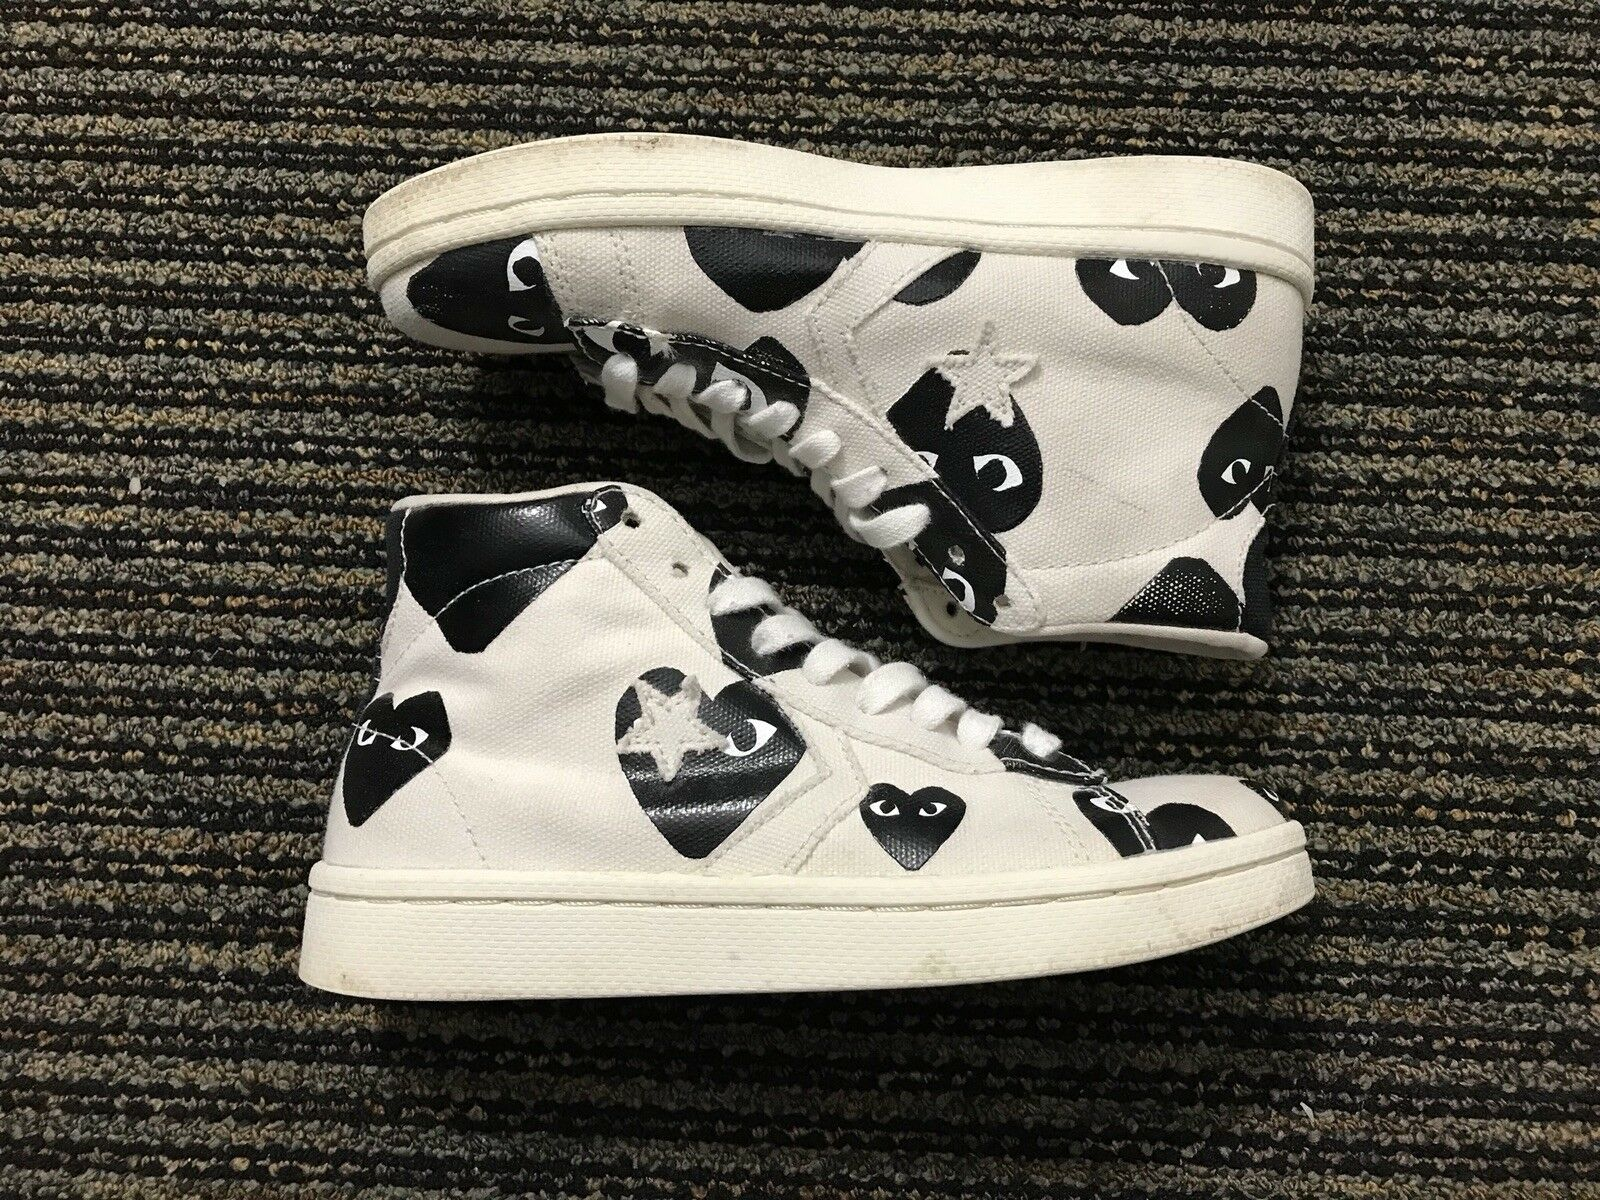 Converse Comme des Garcons Play Pro Leather White High Top 4 Men's  5.5 Women's